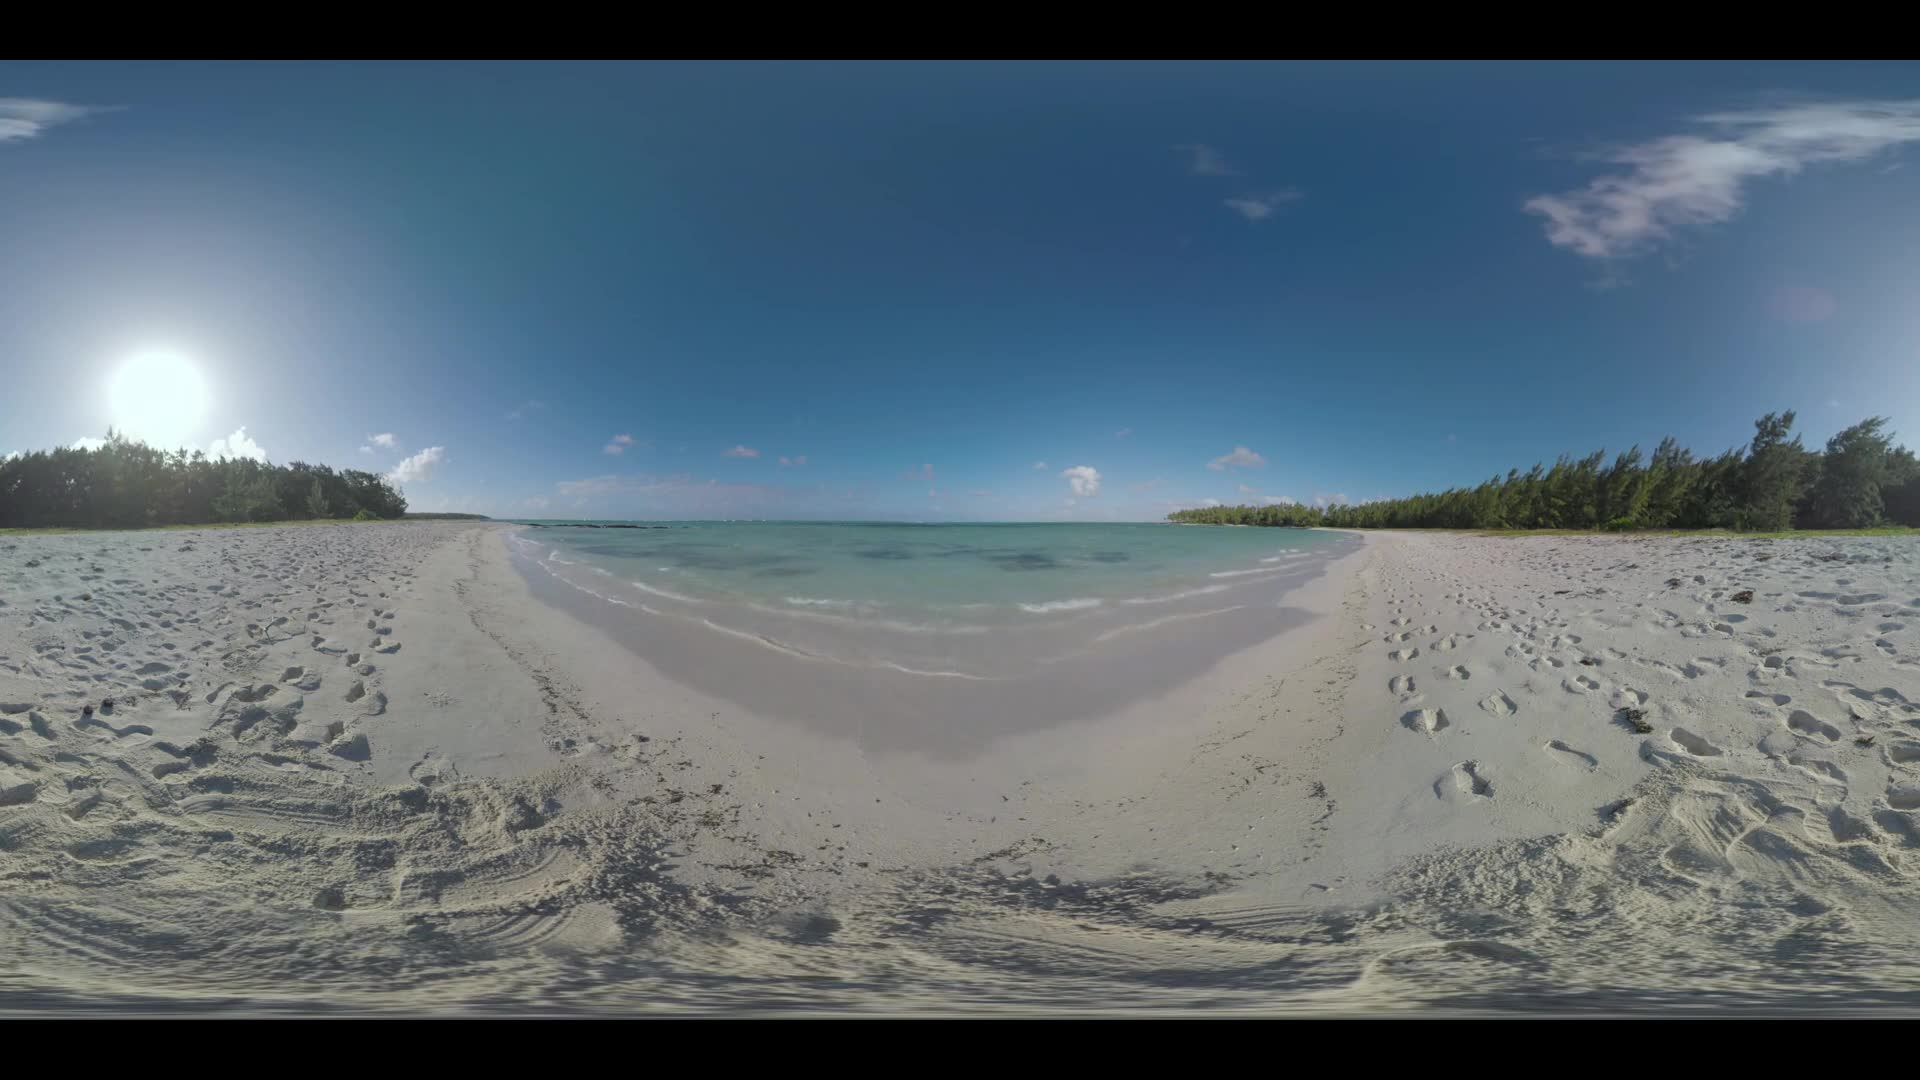 360 VR video. Nature scene of Mauritius Island. View to the clear blue ocean, beach with footprints and green trees along the coast. Bright sun shining in the sky